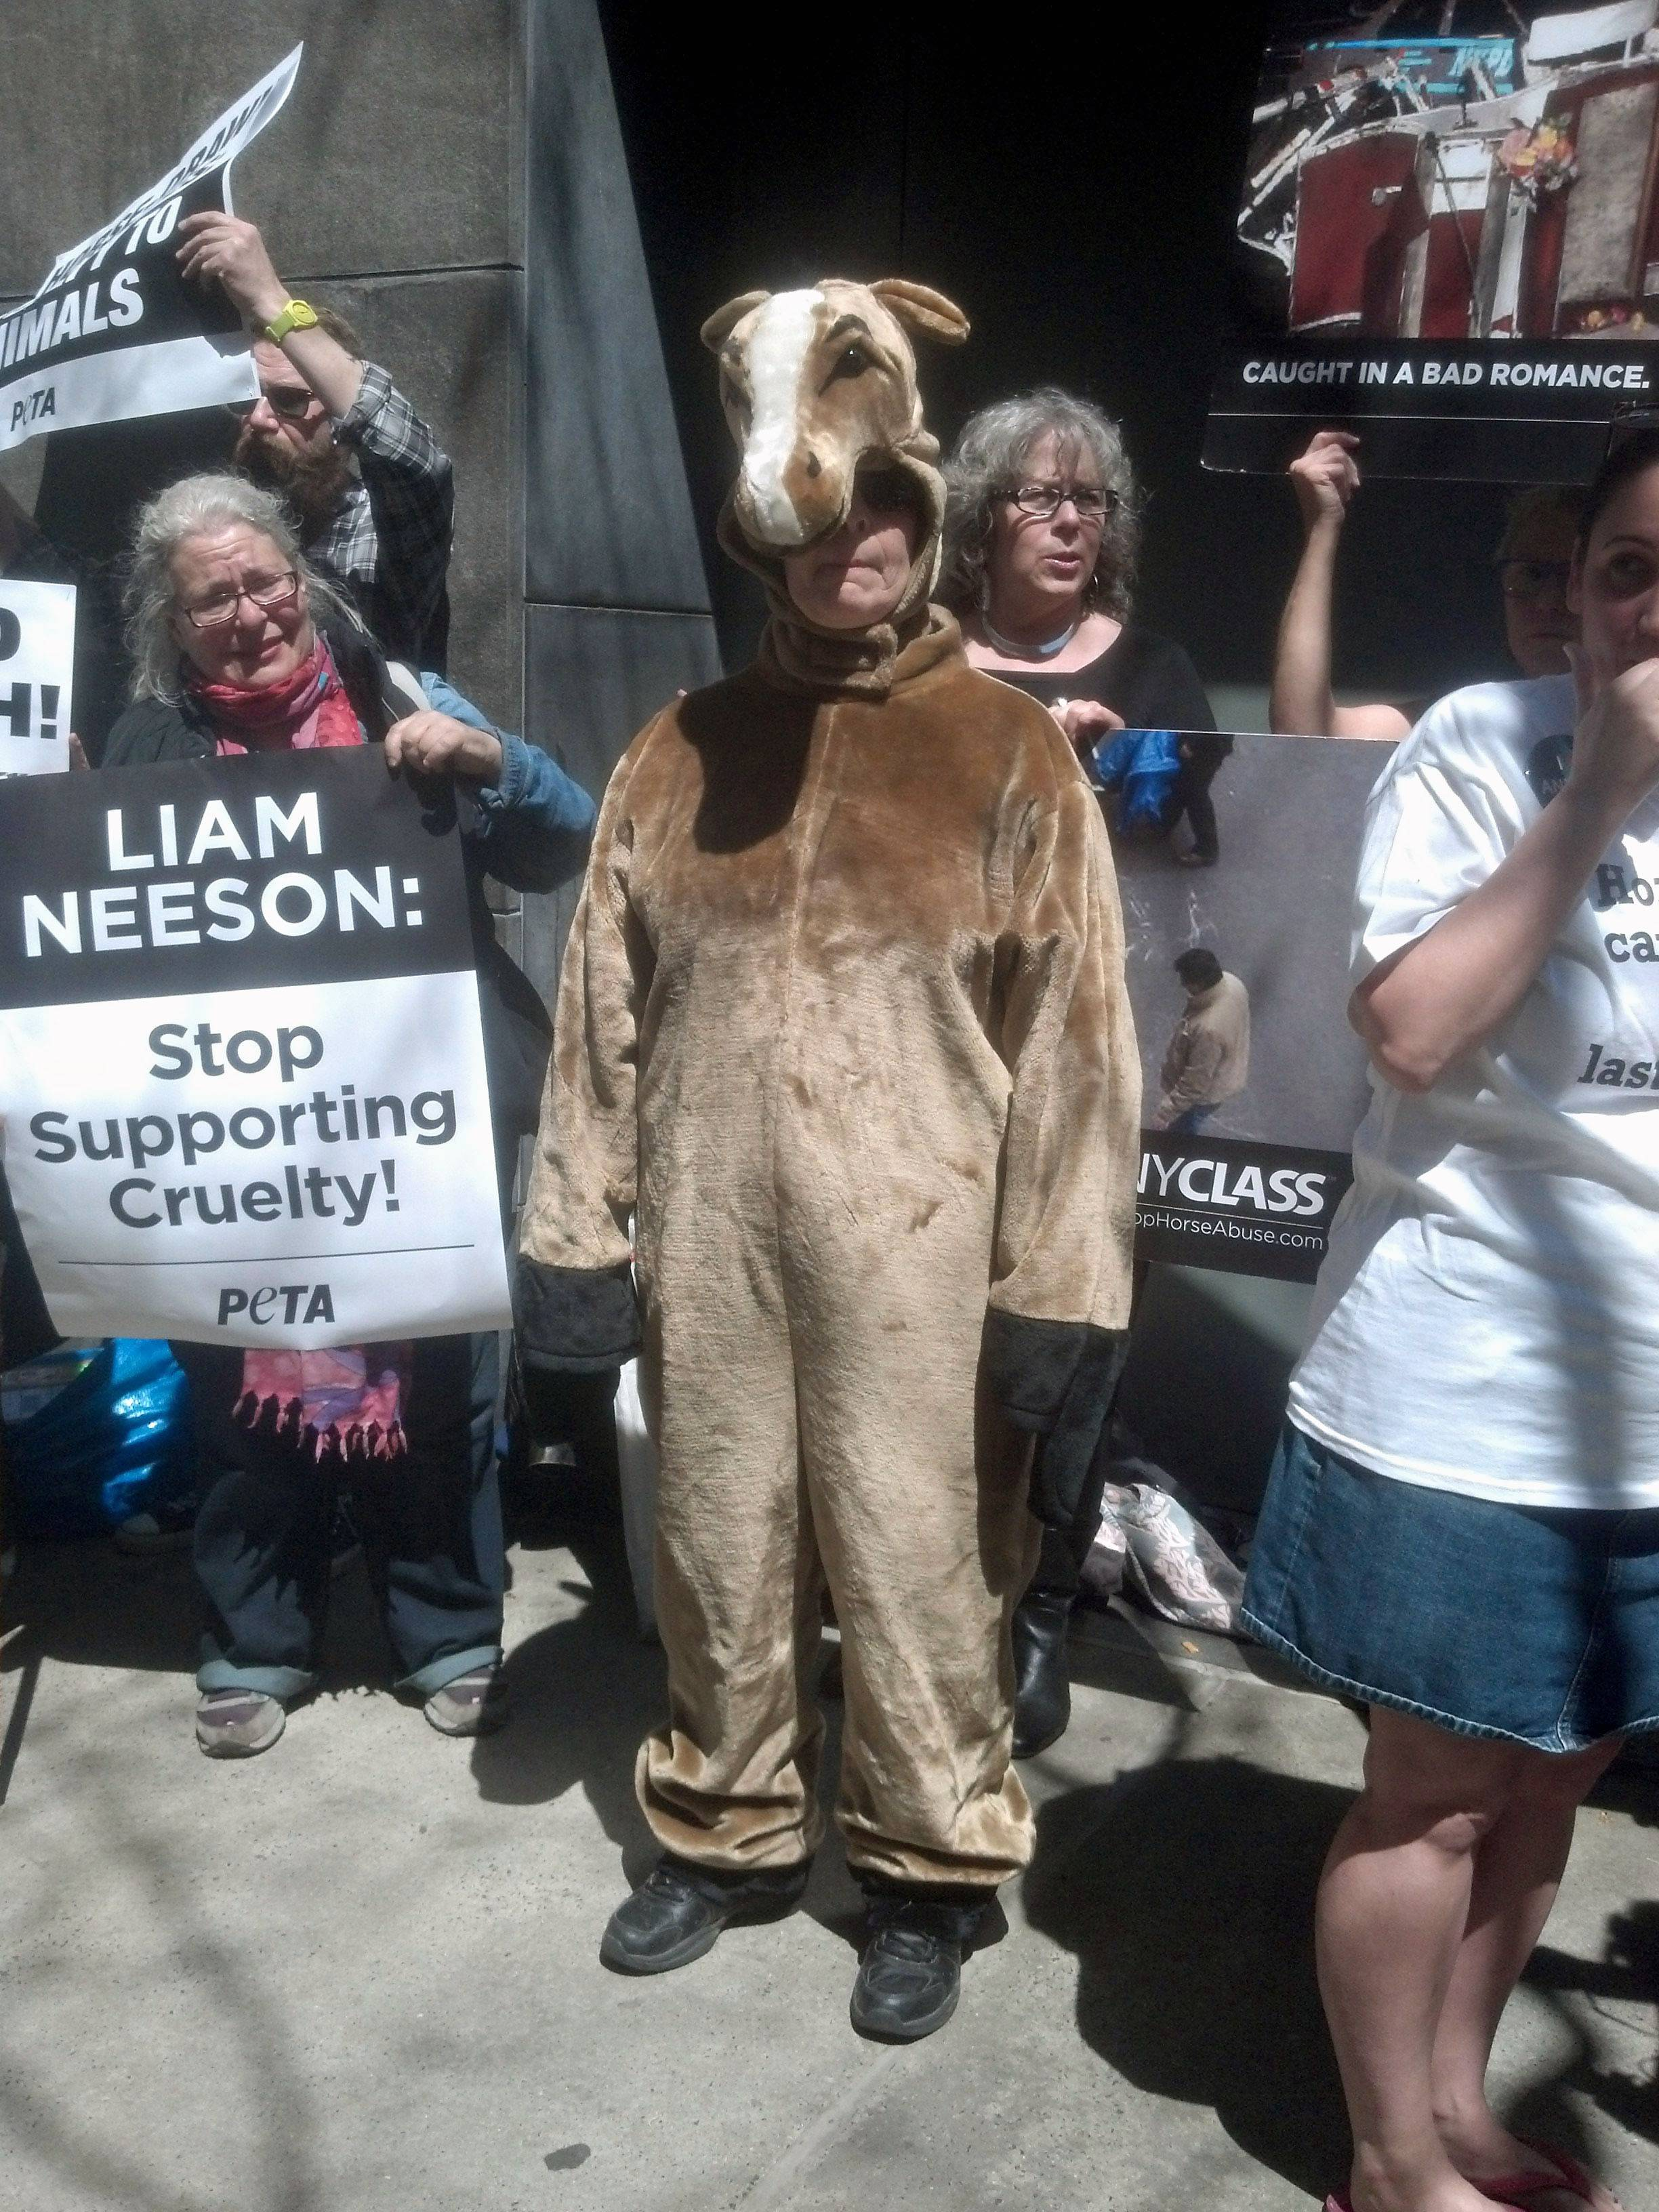 Dressed as a horse, Lisa Jablow, center, a member of NYCLASS which opposes use of carriage horses in New York City, joins other animal rights activists outside actor Liam Neeson's home on Saturdayto protest his stance on the continued use of carriage horses in Central Park and certain roads around the city. The 61-year-old actor is a vocal supporter of the city's carriage horse industry. Mayor Bill de Blasio has pledged to ban the horse-drawn carriages and replace them with electric vintage-style cars, commissioned by NYCLASS.